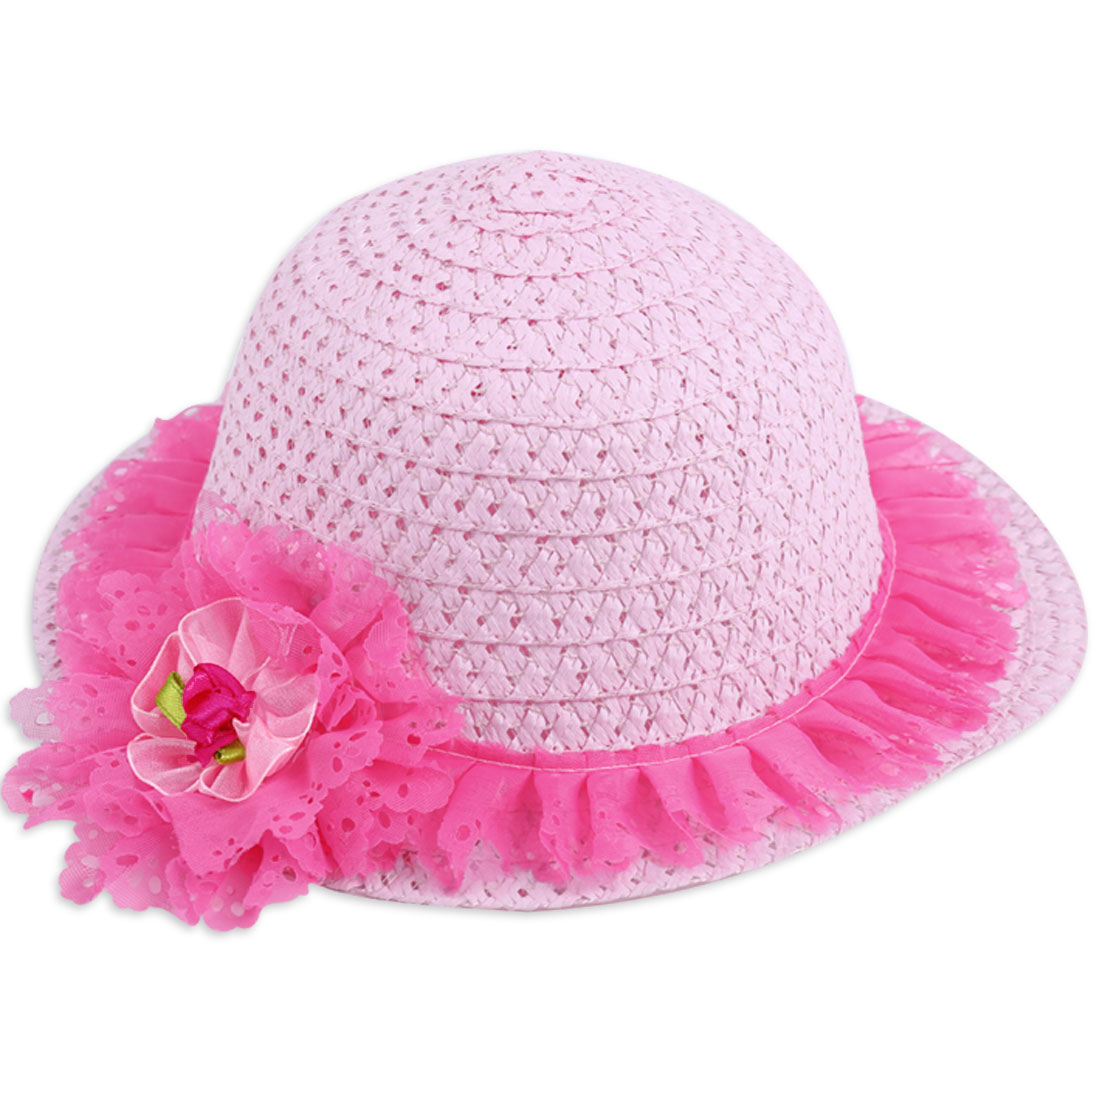 Girls Round Hem Hollow Out Flower Embellished Neck Strap Hat Pink